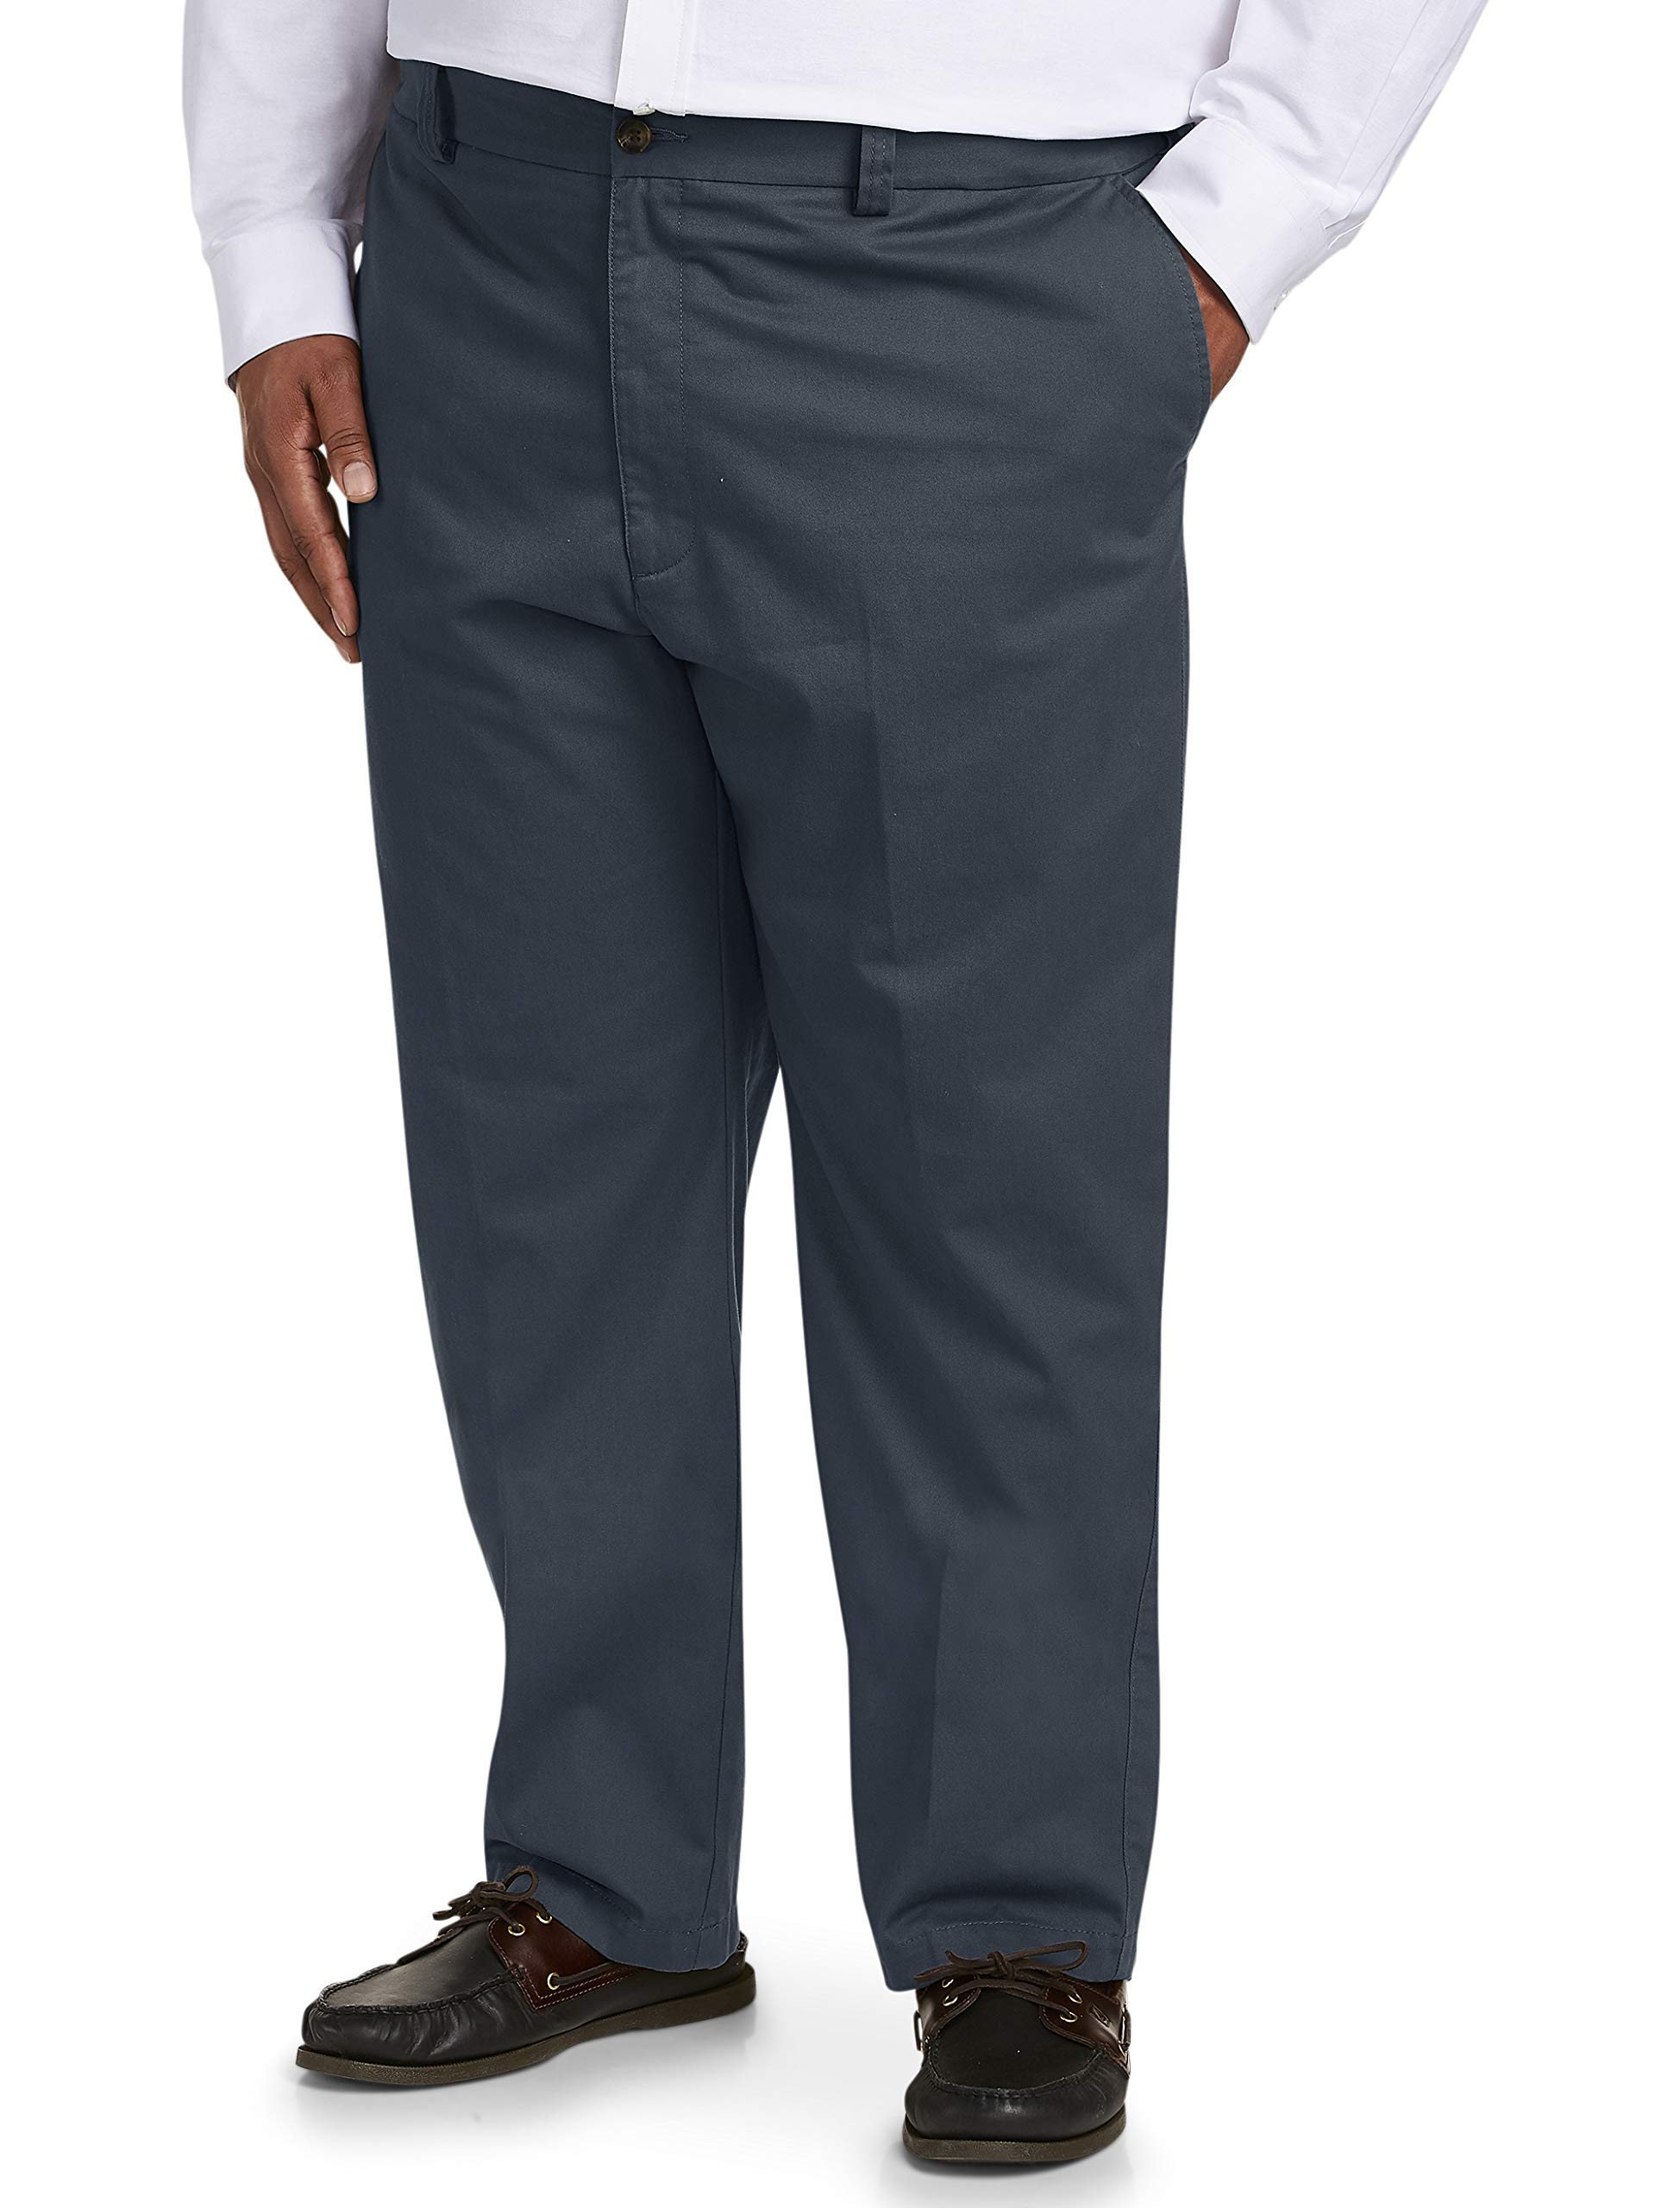 Amazon Essentials Men's Big & Tall Relaxed-fit Wrinkle-Resistant Flat-Front Chino Pant fit by DXL, Navy 44W x 32L